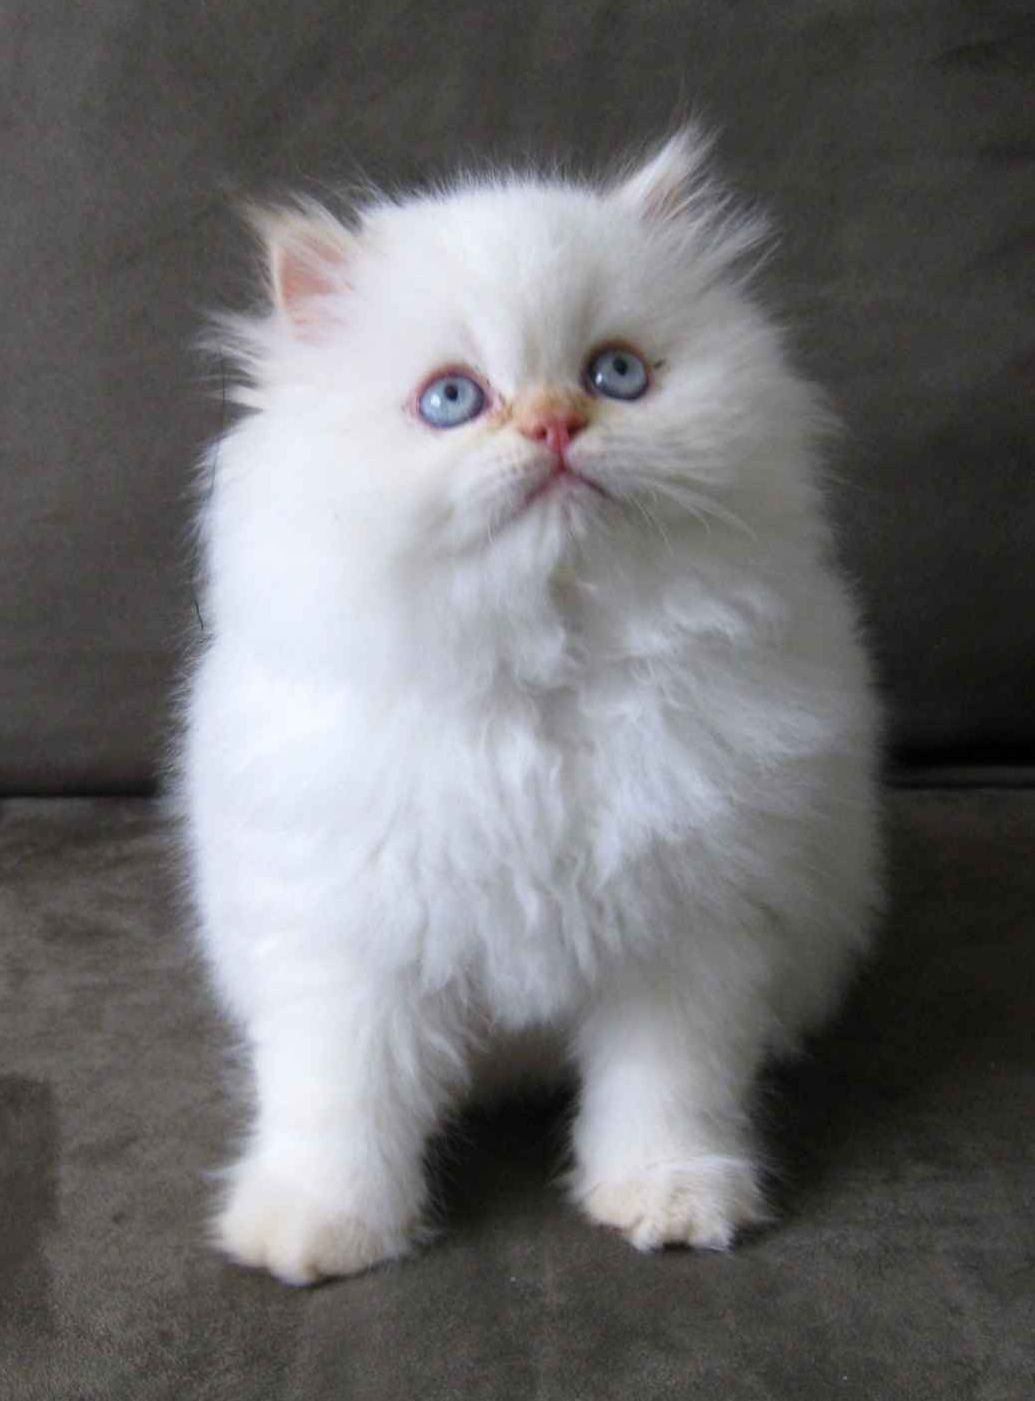 Also Obsessed With Fluffy White Kittens Namely My Eloise Fluffy Kittens White Fluffy Kittens Cute Little Kittens